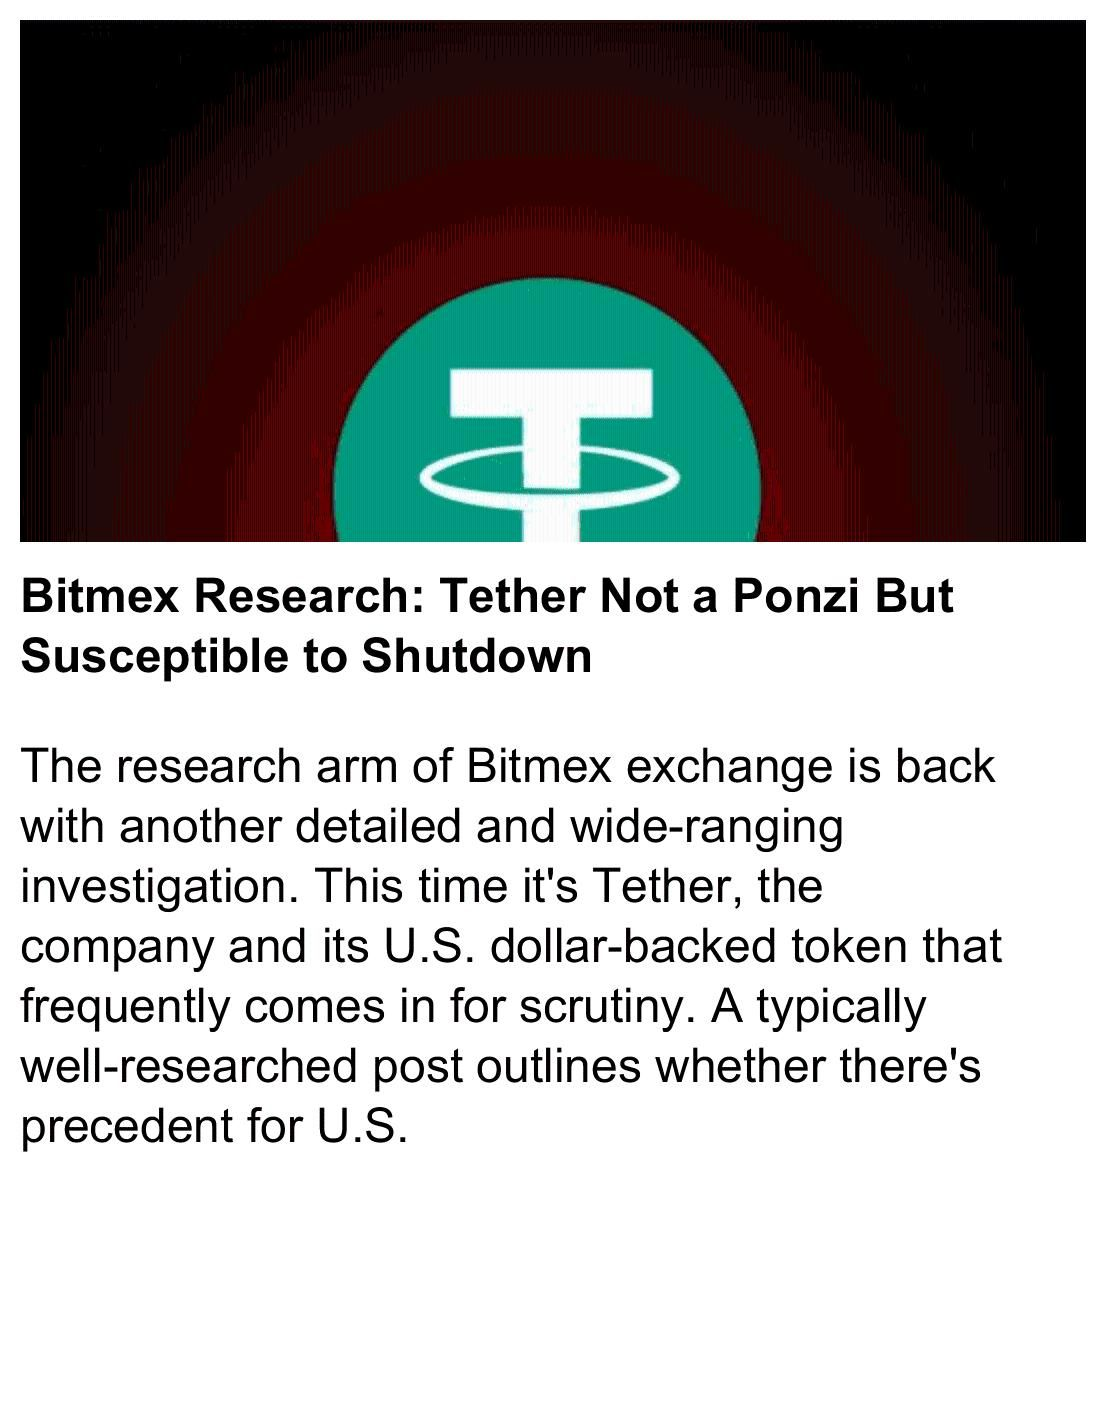 Bitmex Research Tether Not A Ponzi But Susceptible To Shutdown Bitmex Cryptocurrency Bitcoin Tether Https News Cryptocurrency News Tether Research